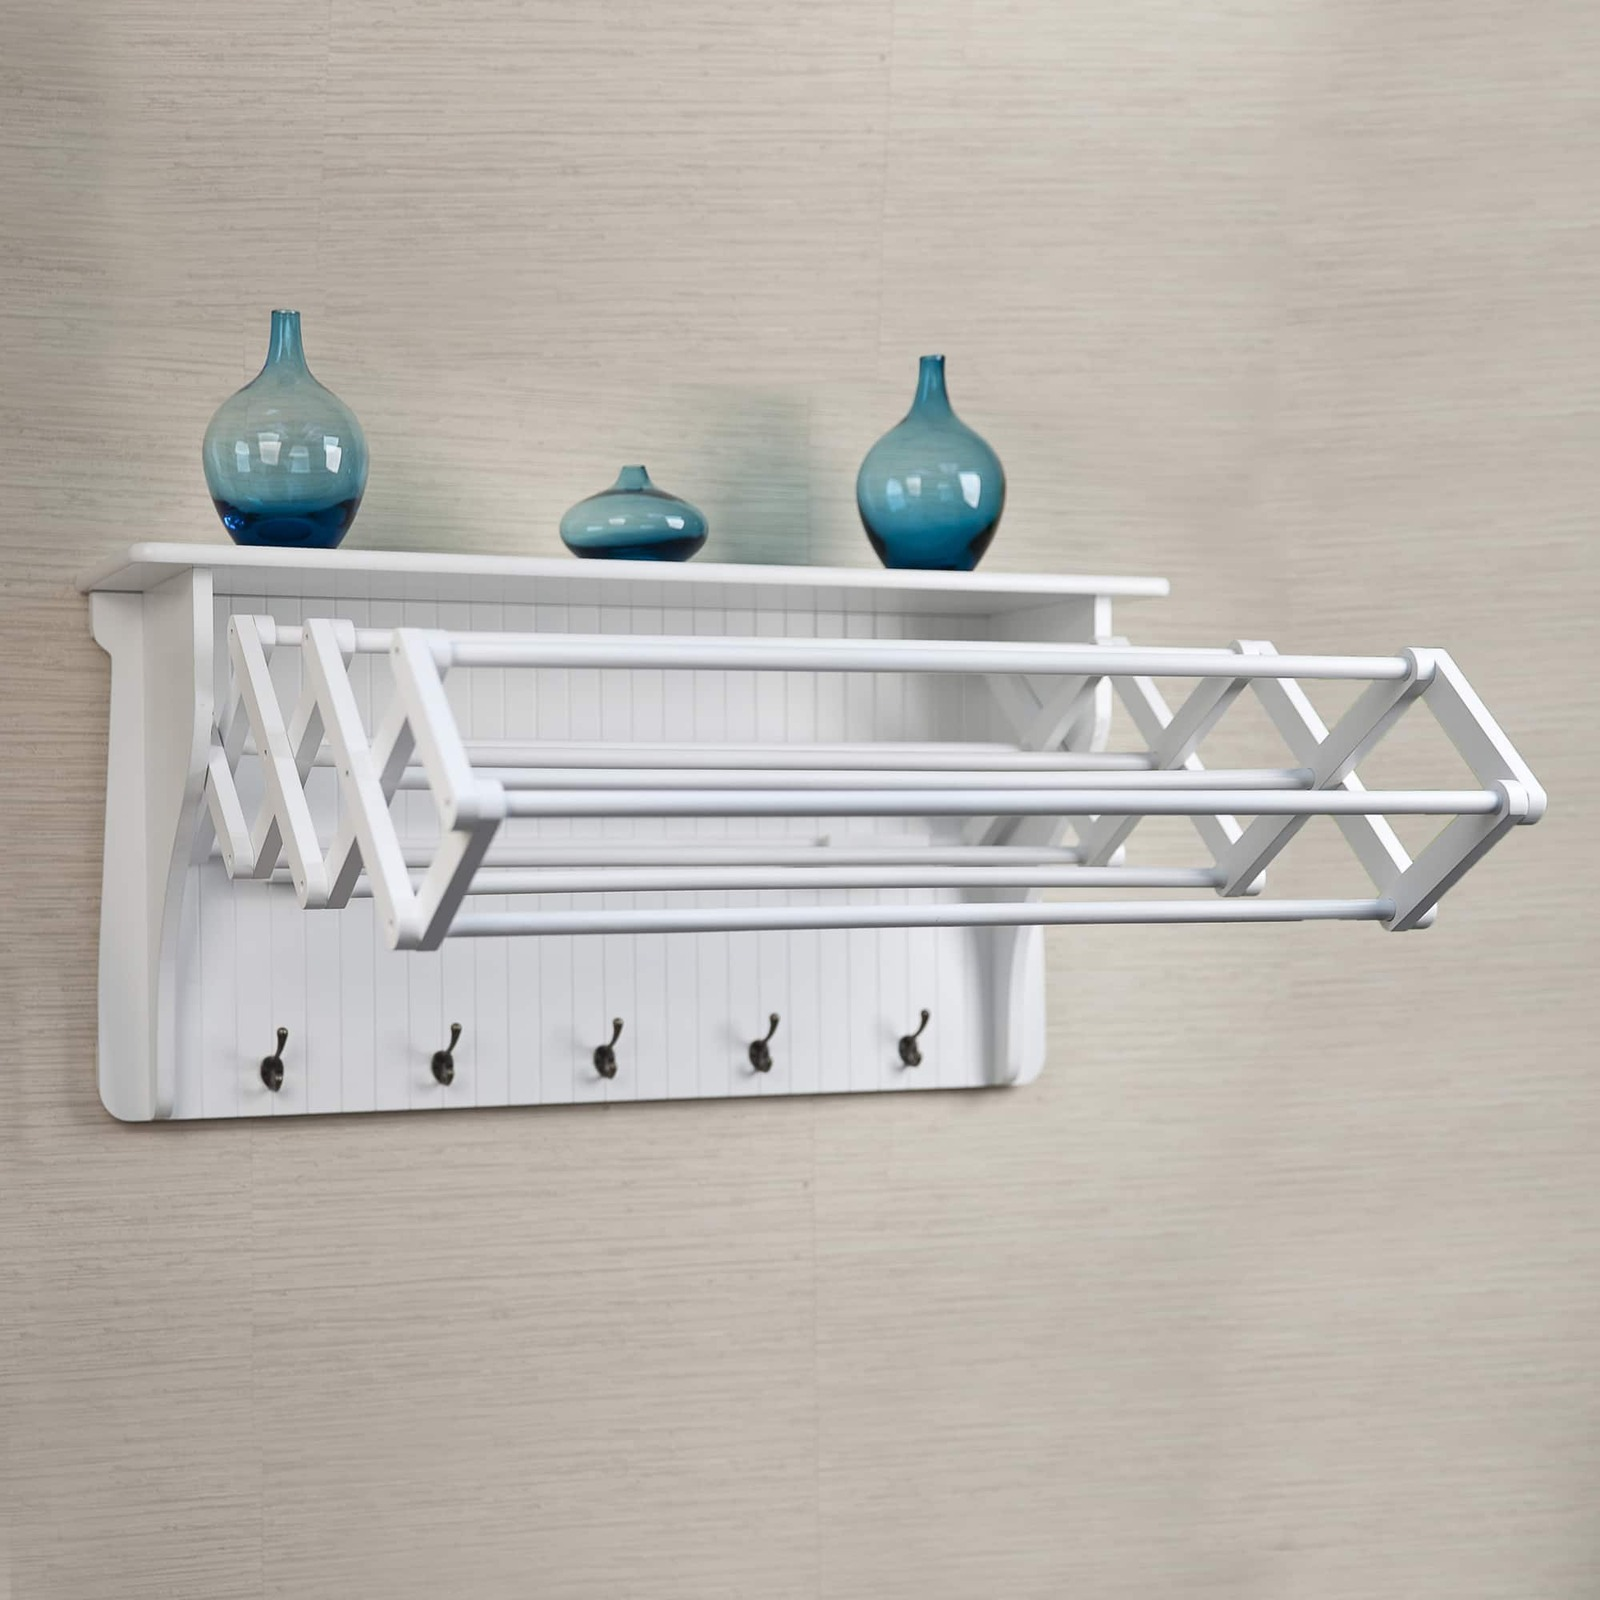 Accordion Drying Rack Wall Mount Clothing Air Dry Hanging Collapsible Laundry